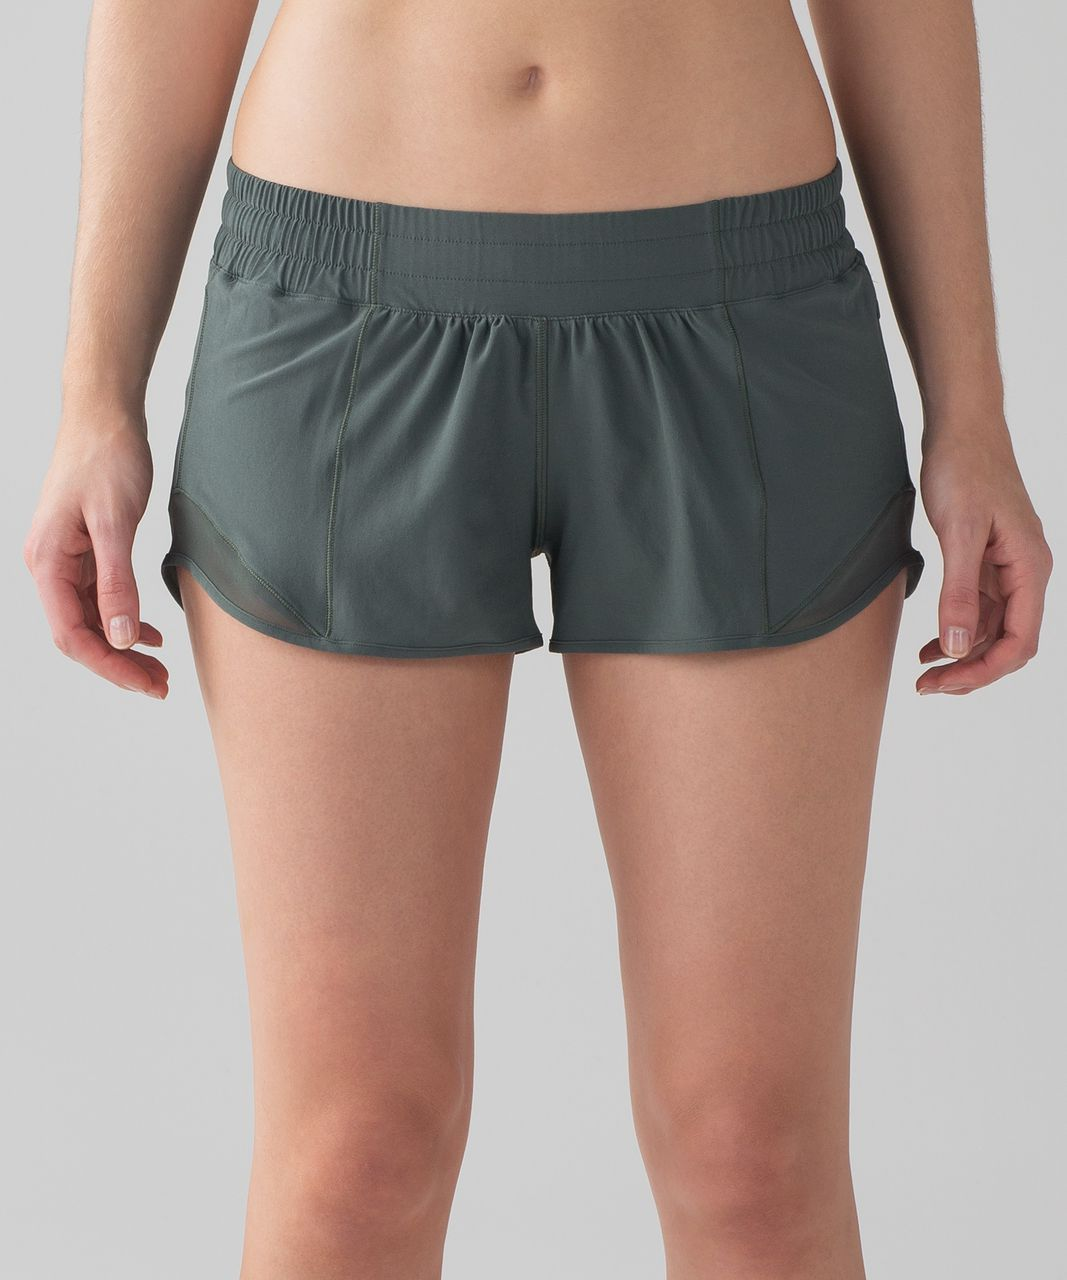 "Lululemon Hotty Hot Short II (2.5"") - Dark Forest"